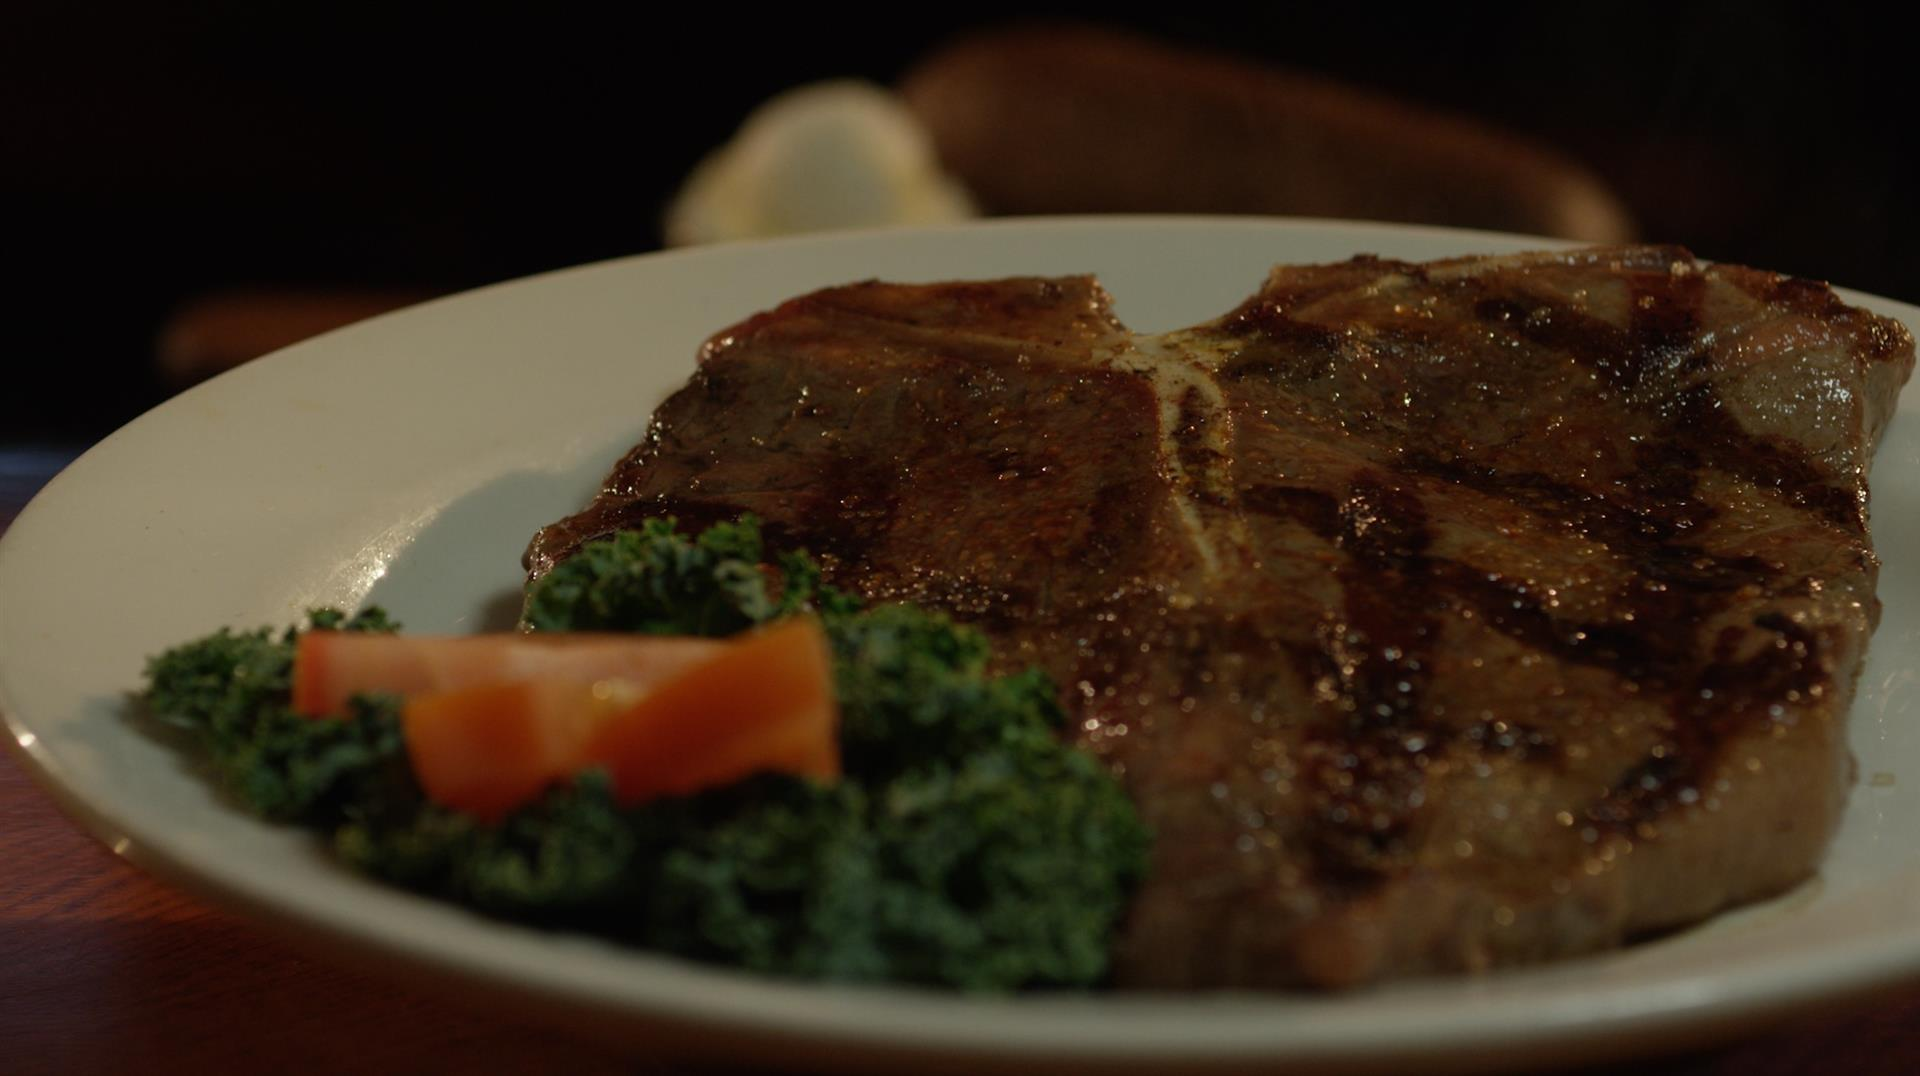 t bone on a plate with an orange garnish